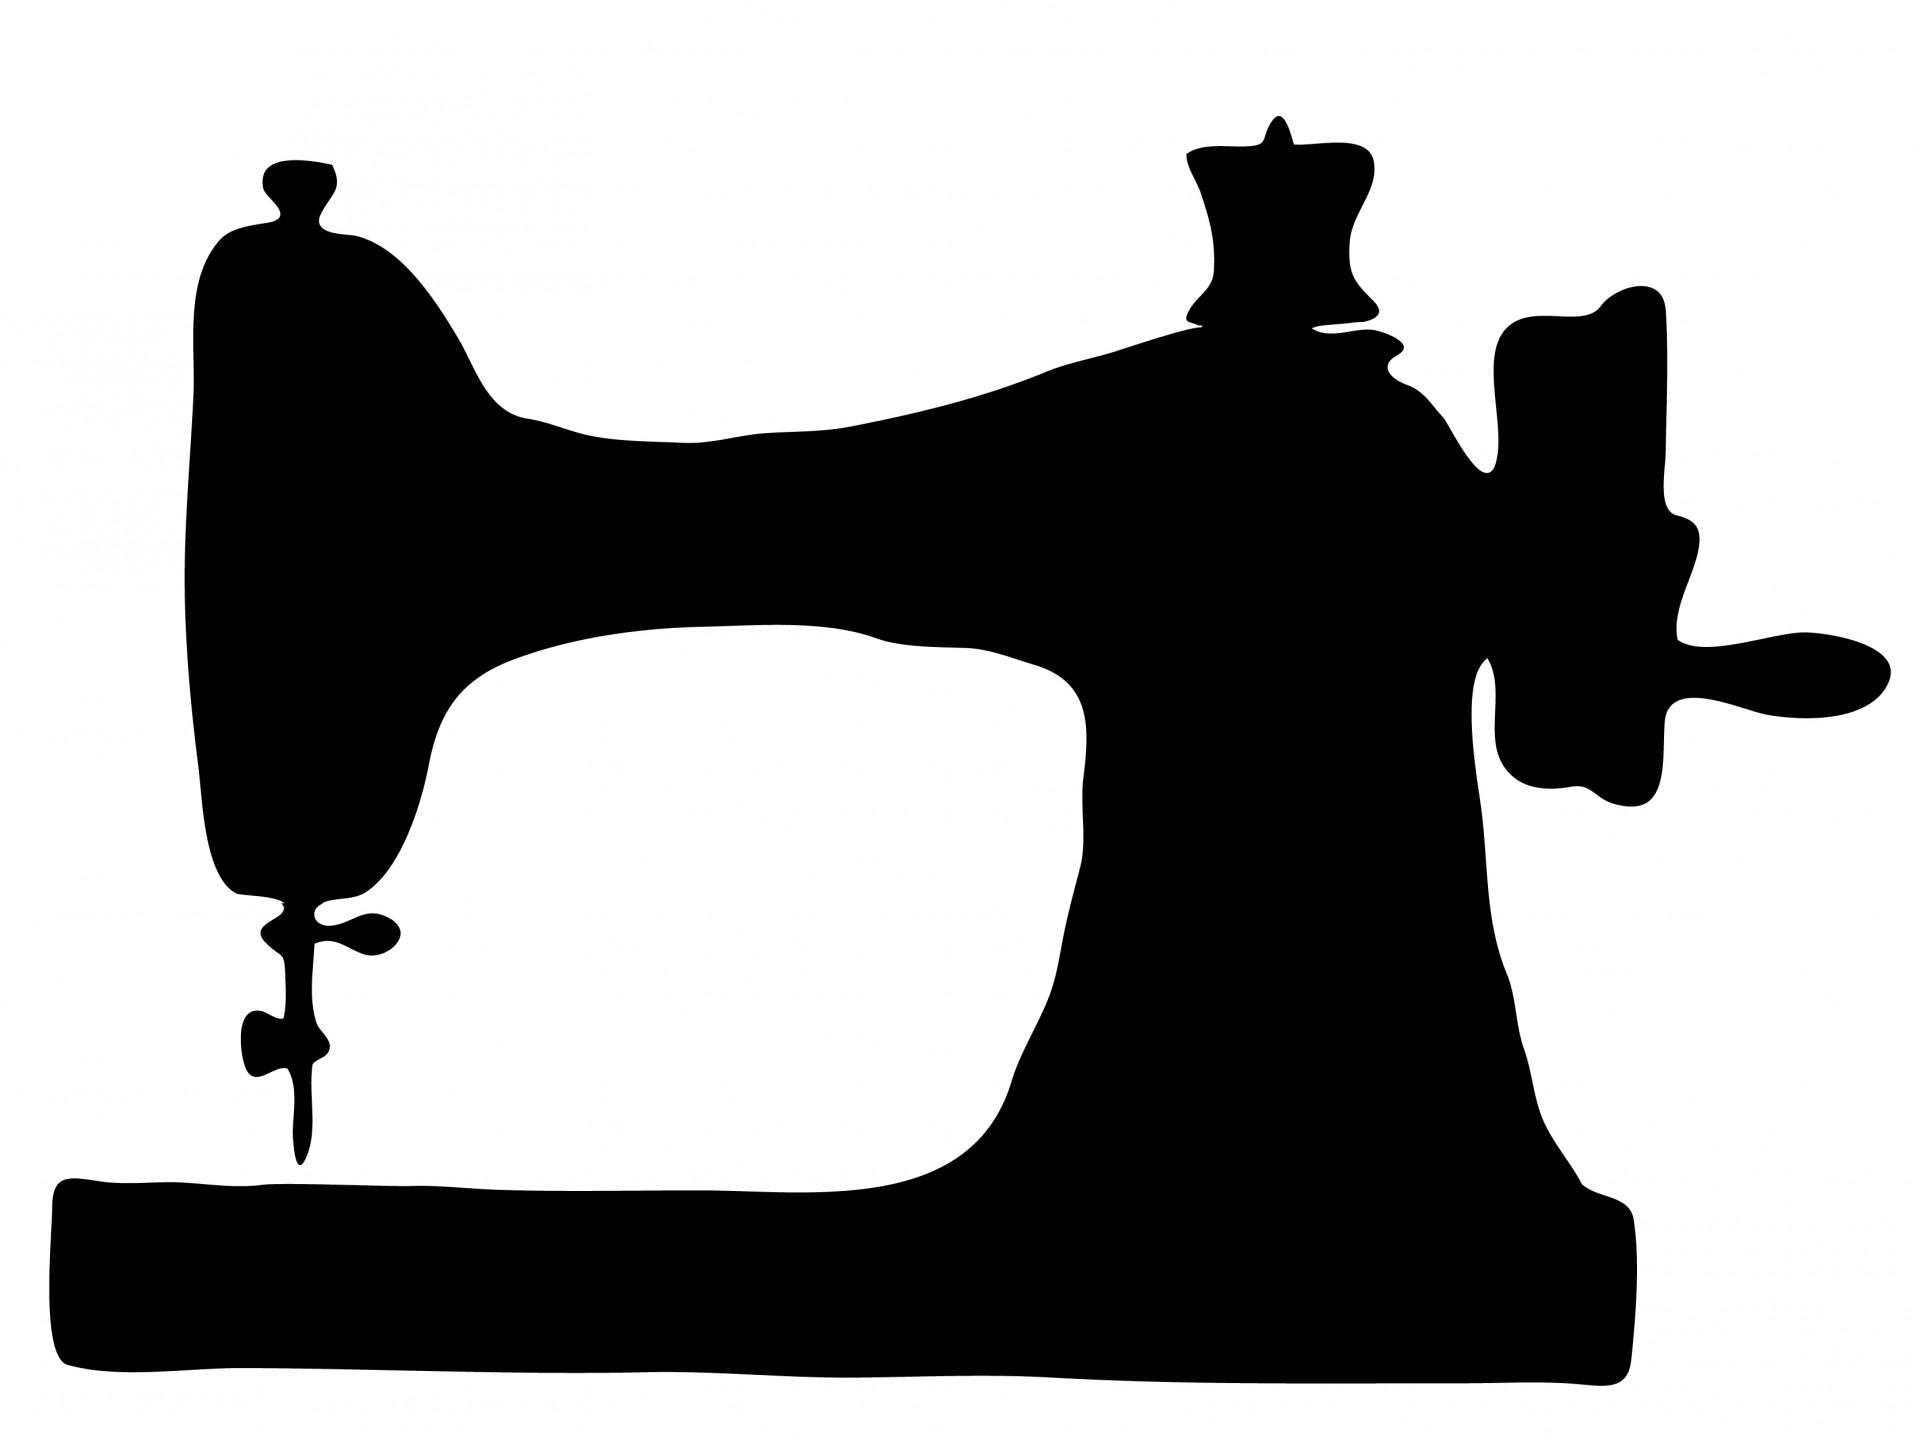 Vintage Sewing Machine Clipart Free Stoc-Vintage Sewing Machine Clipart Free Stock Photo-11